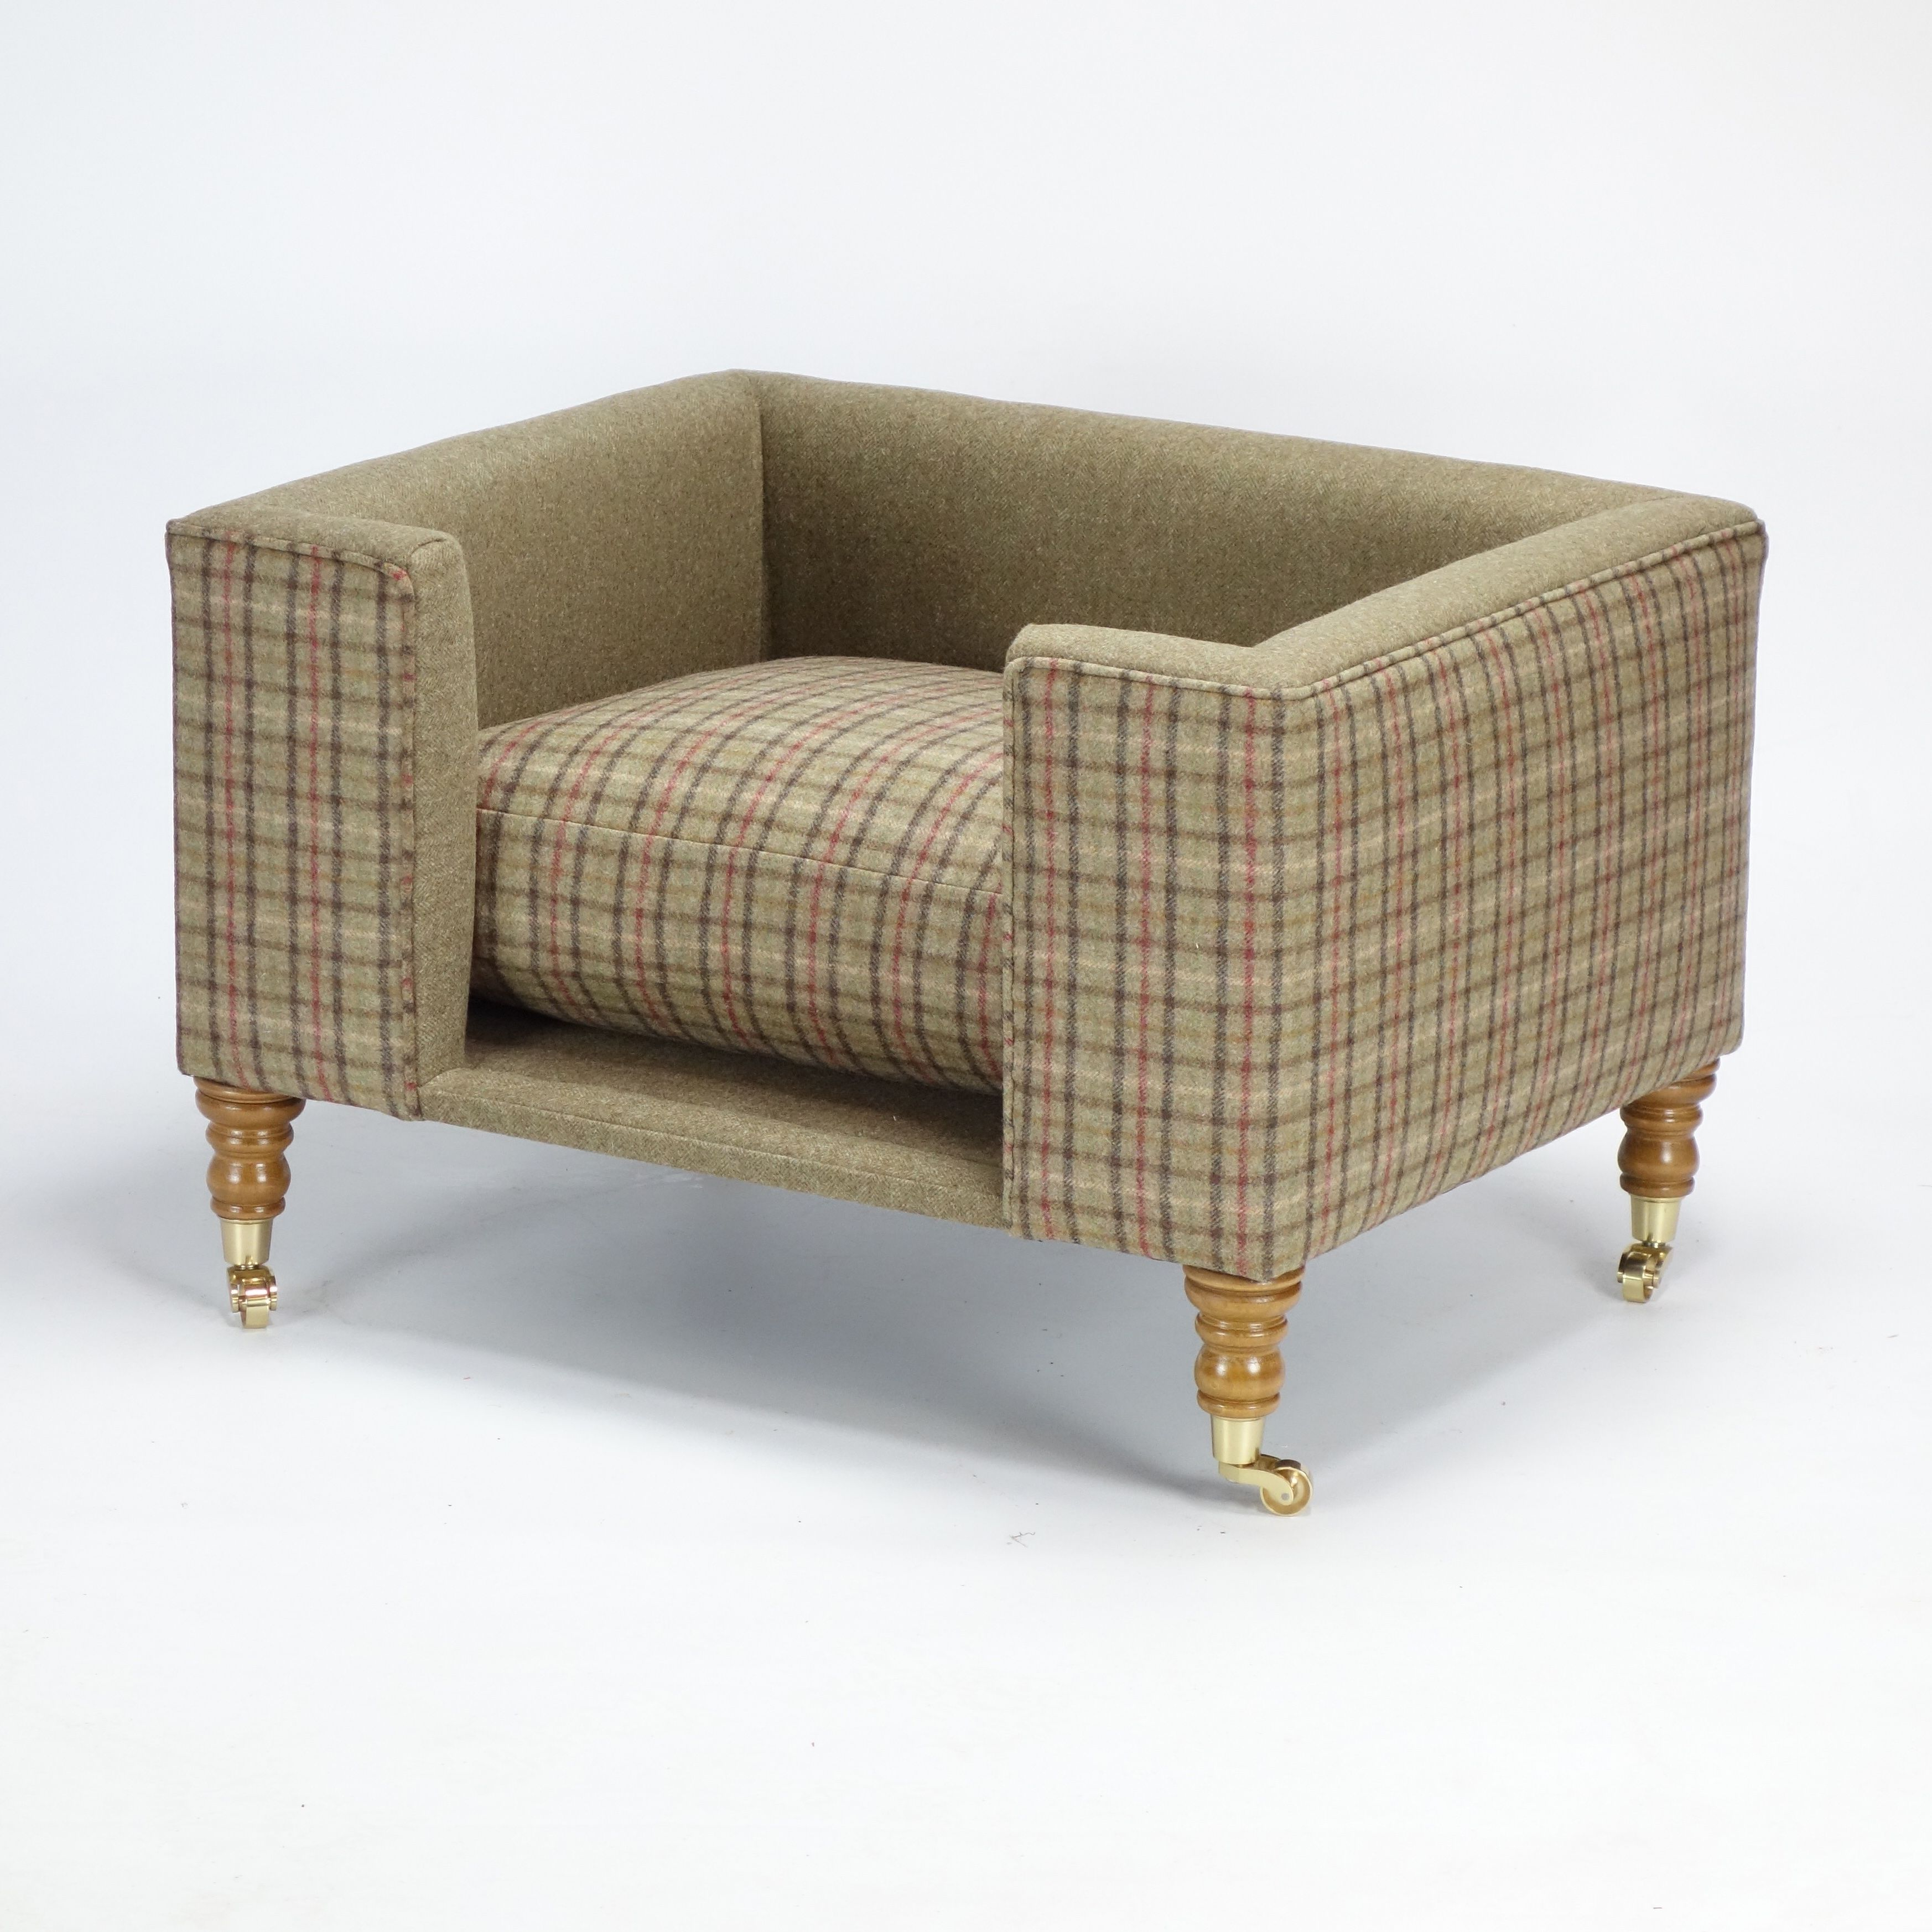 Pin by The Fabulous Dog Bed Company on The Woburn Luxury